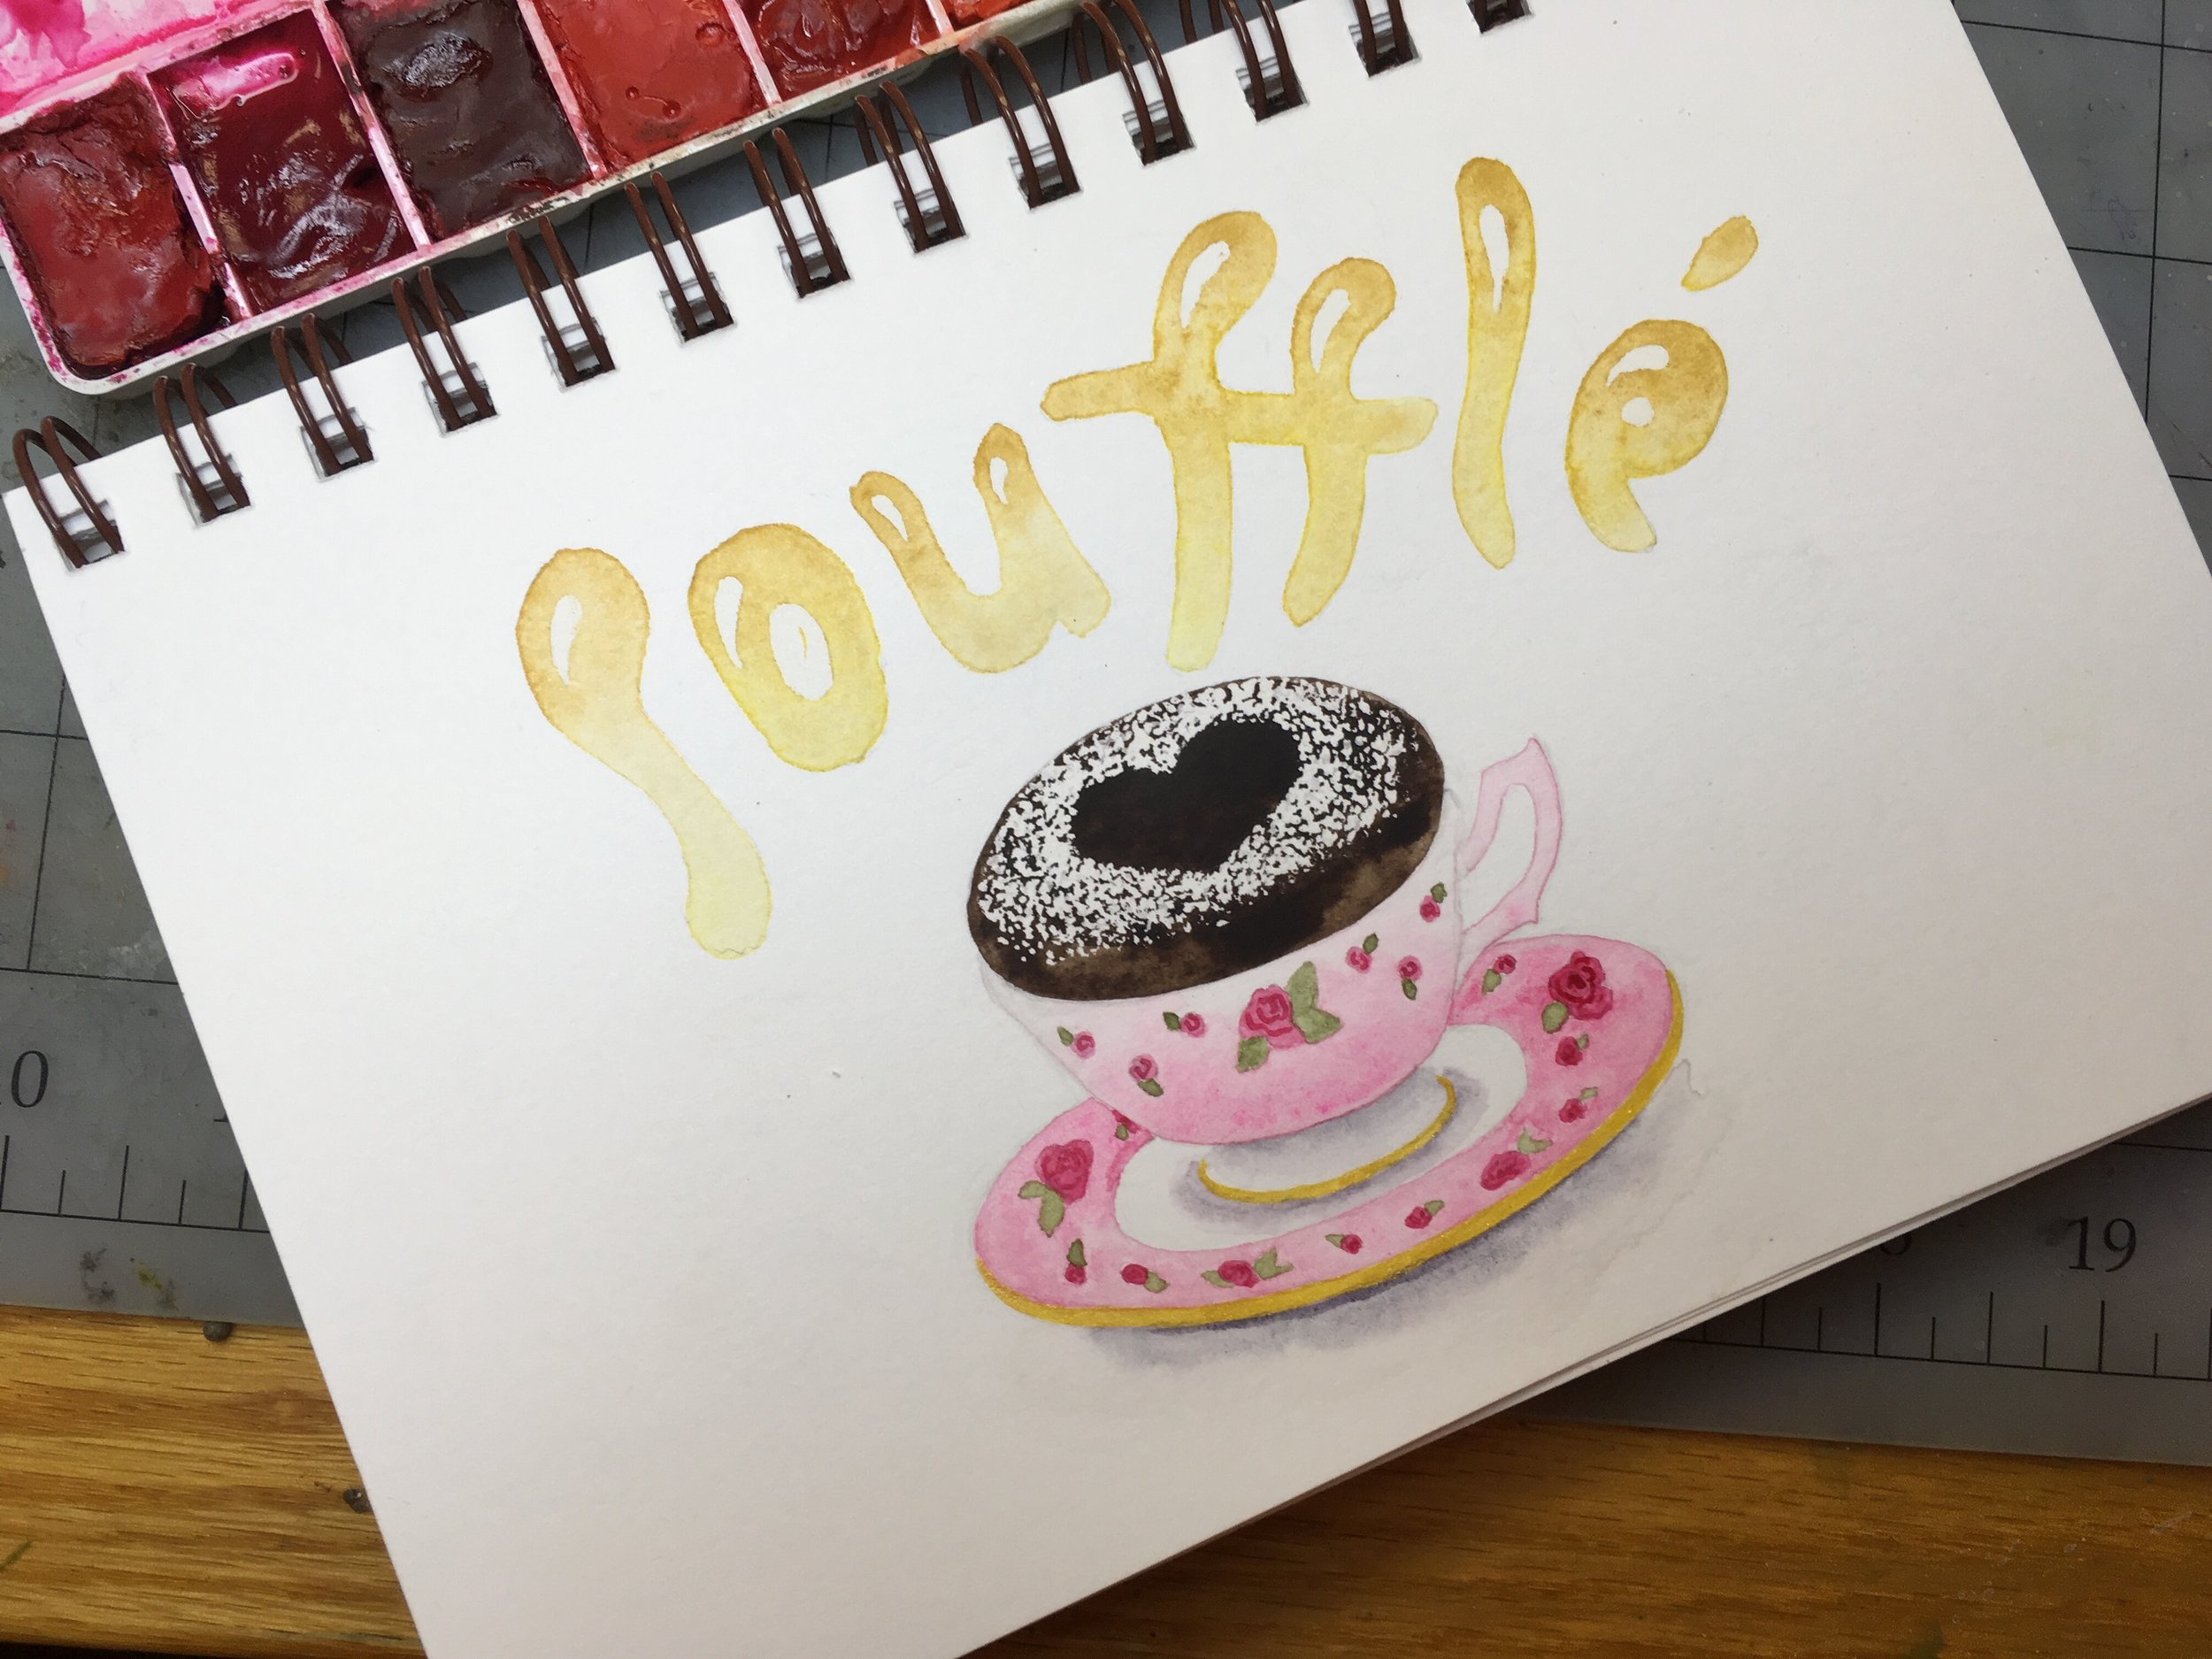 Soufflé, watercolor © Denise Ortakales